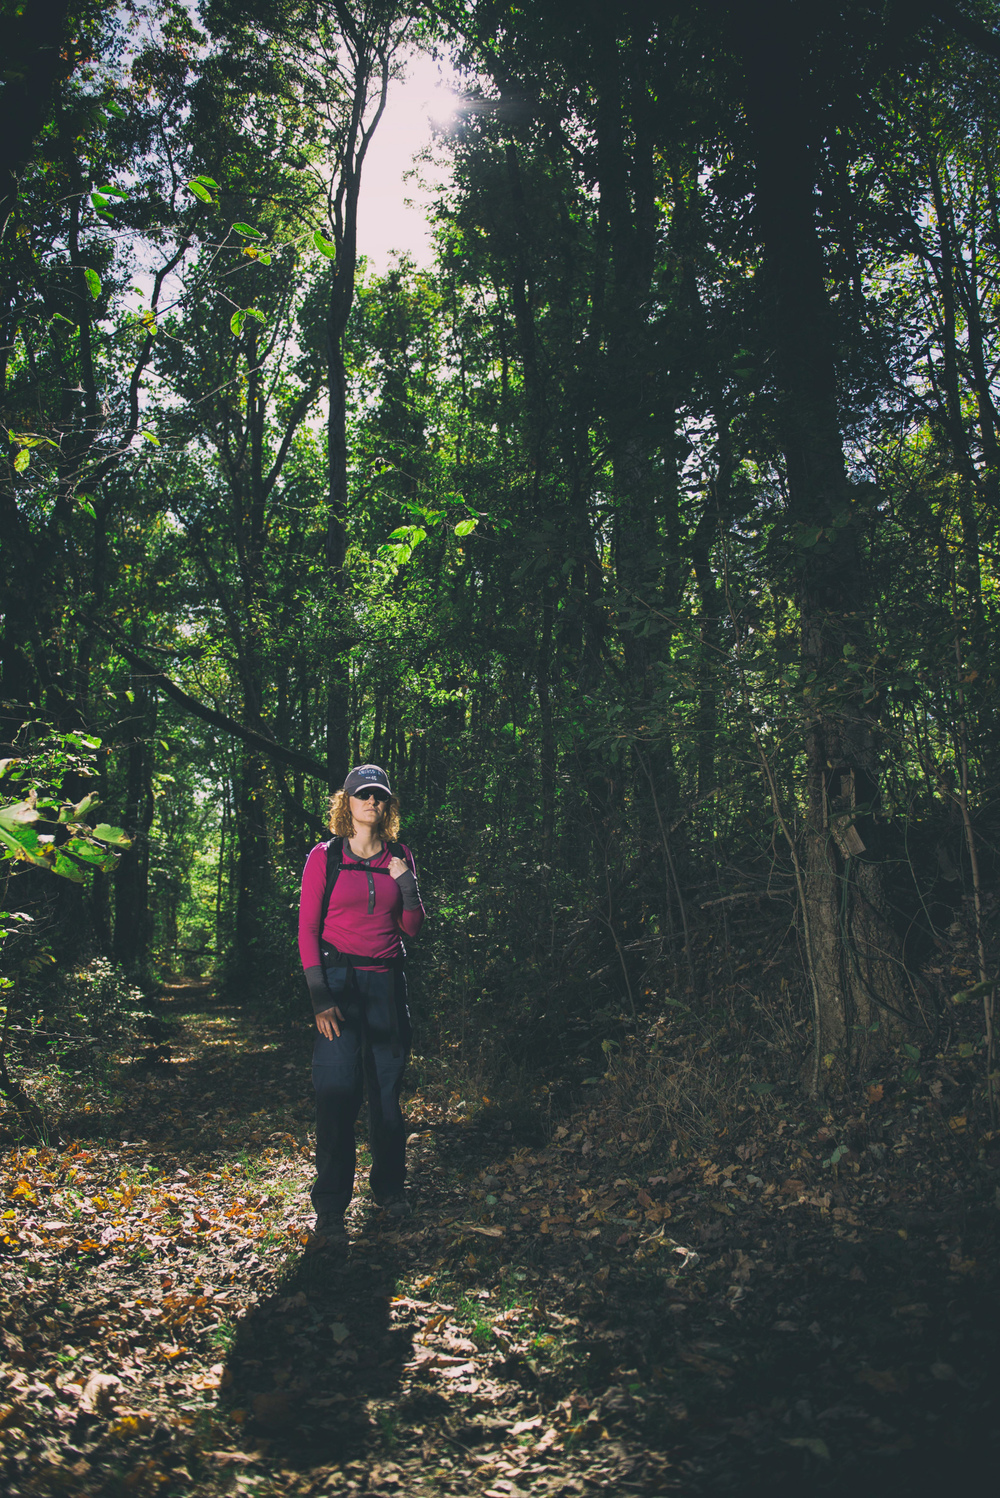 A hiker at Fort Pillow State Park, TN in Autumn